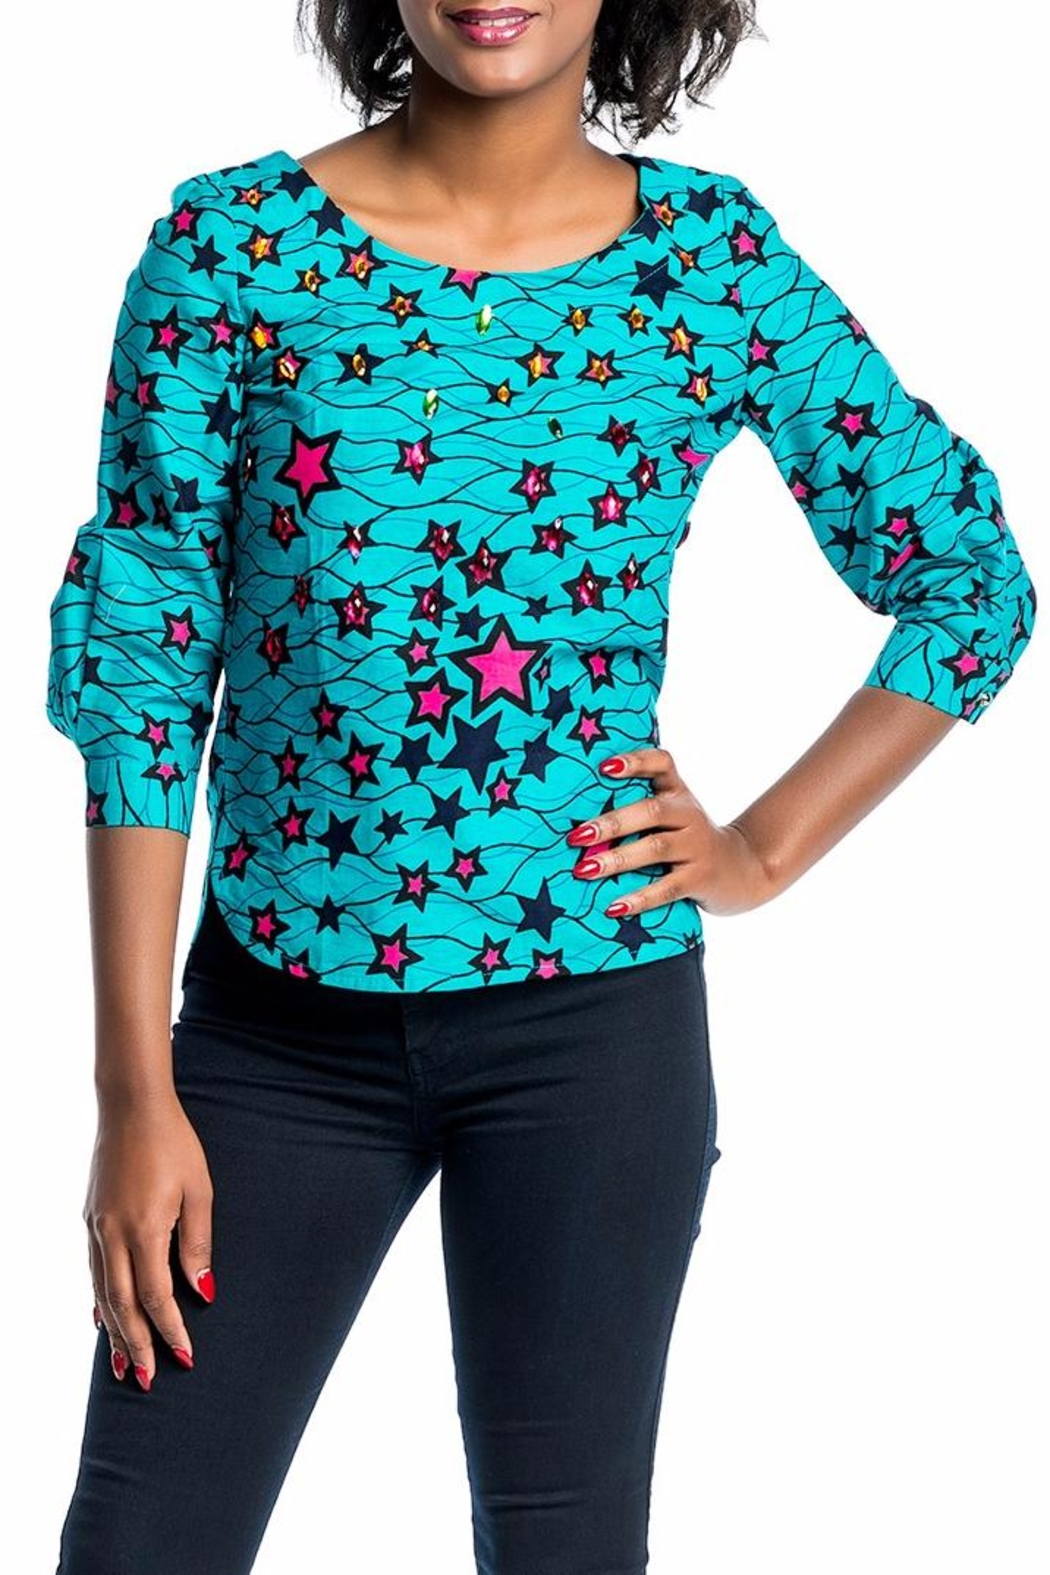 MODChic Couture Aggie Ankara Top - Main Image